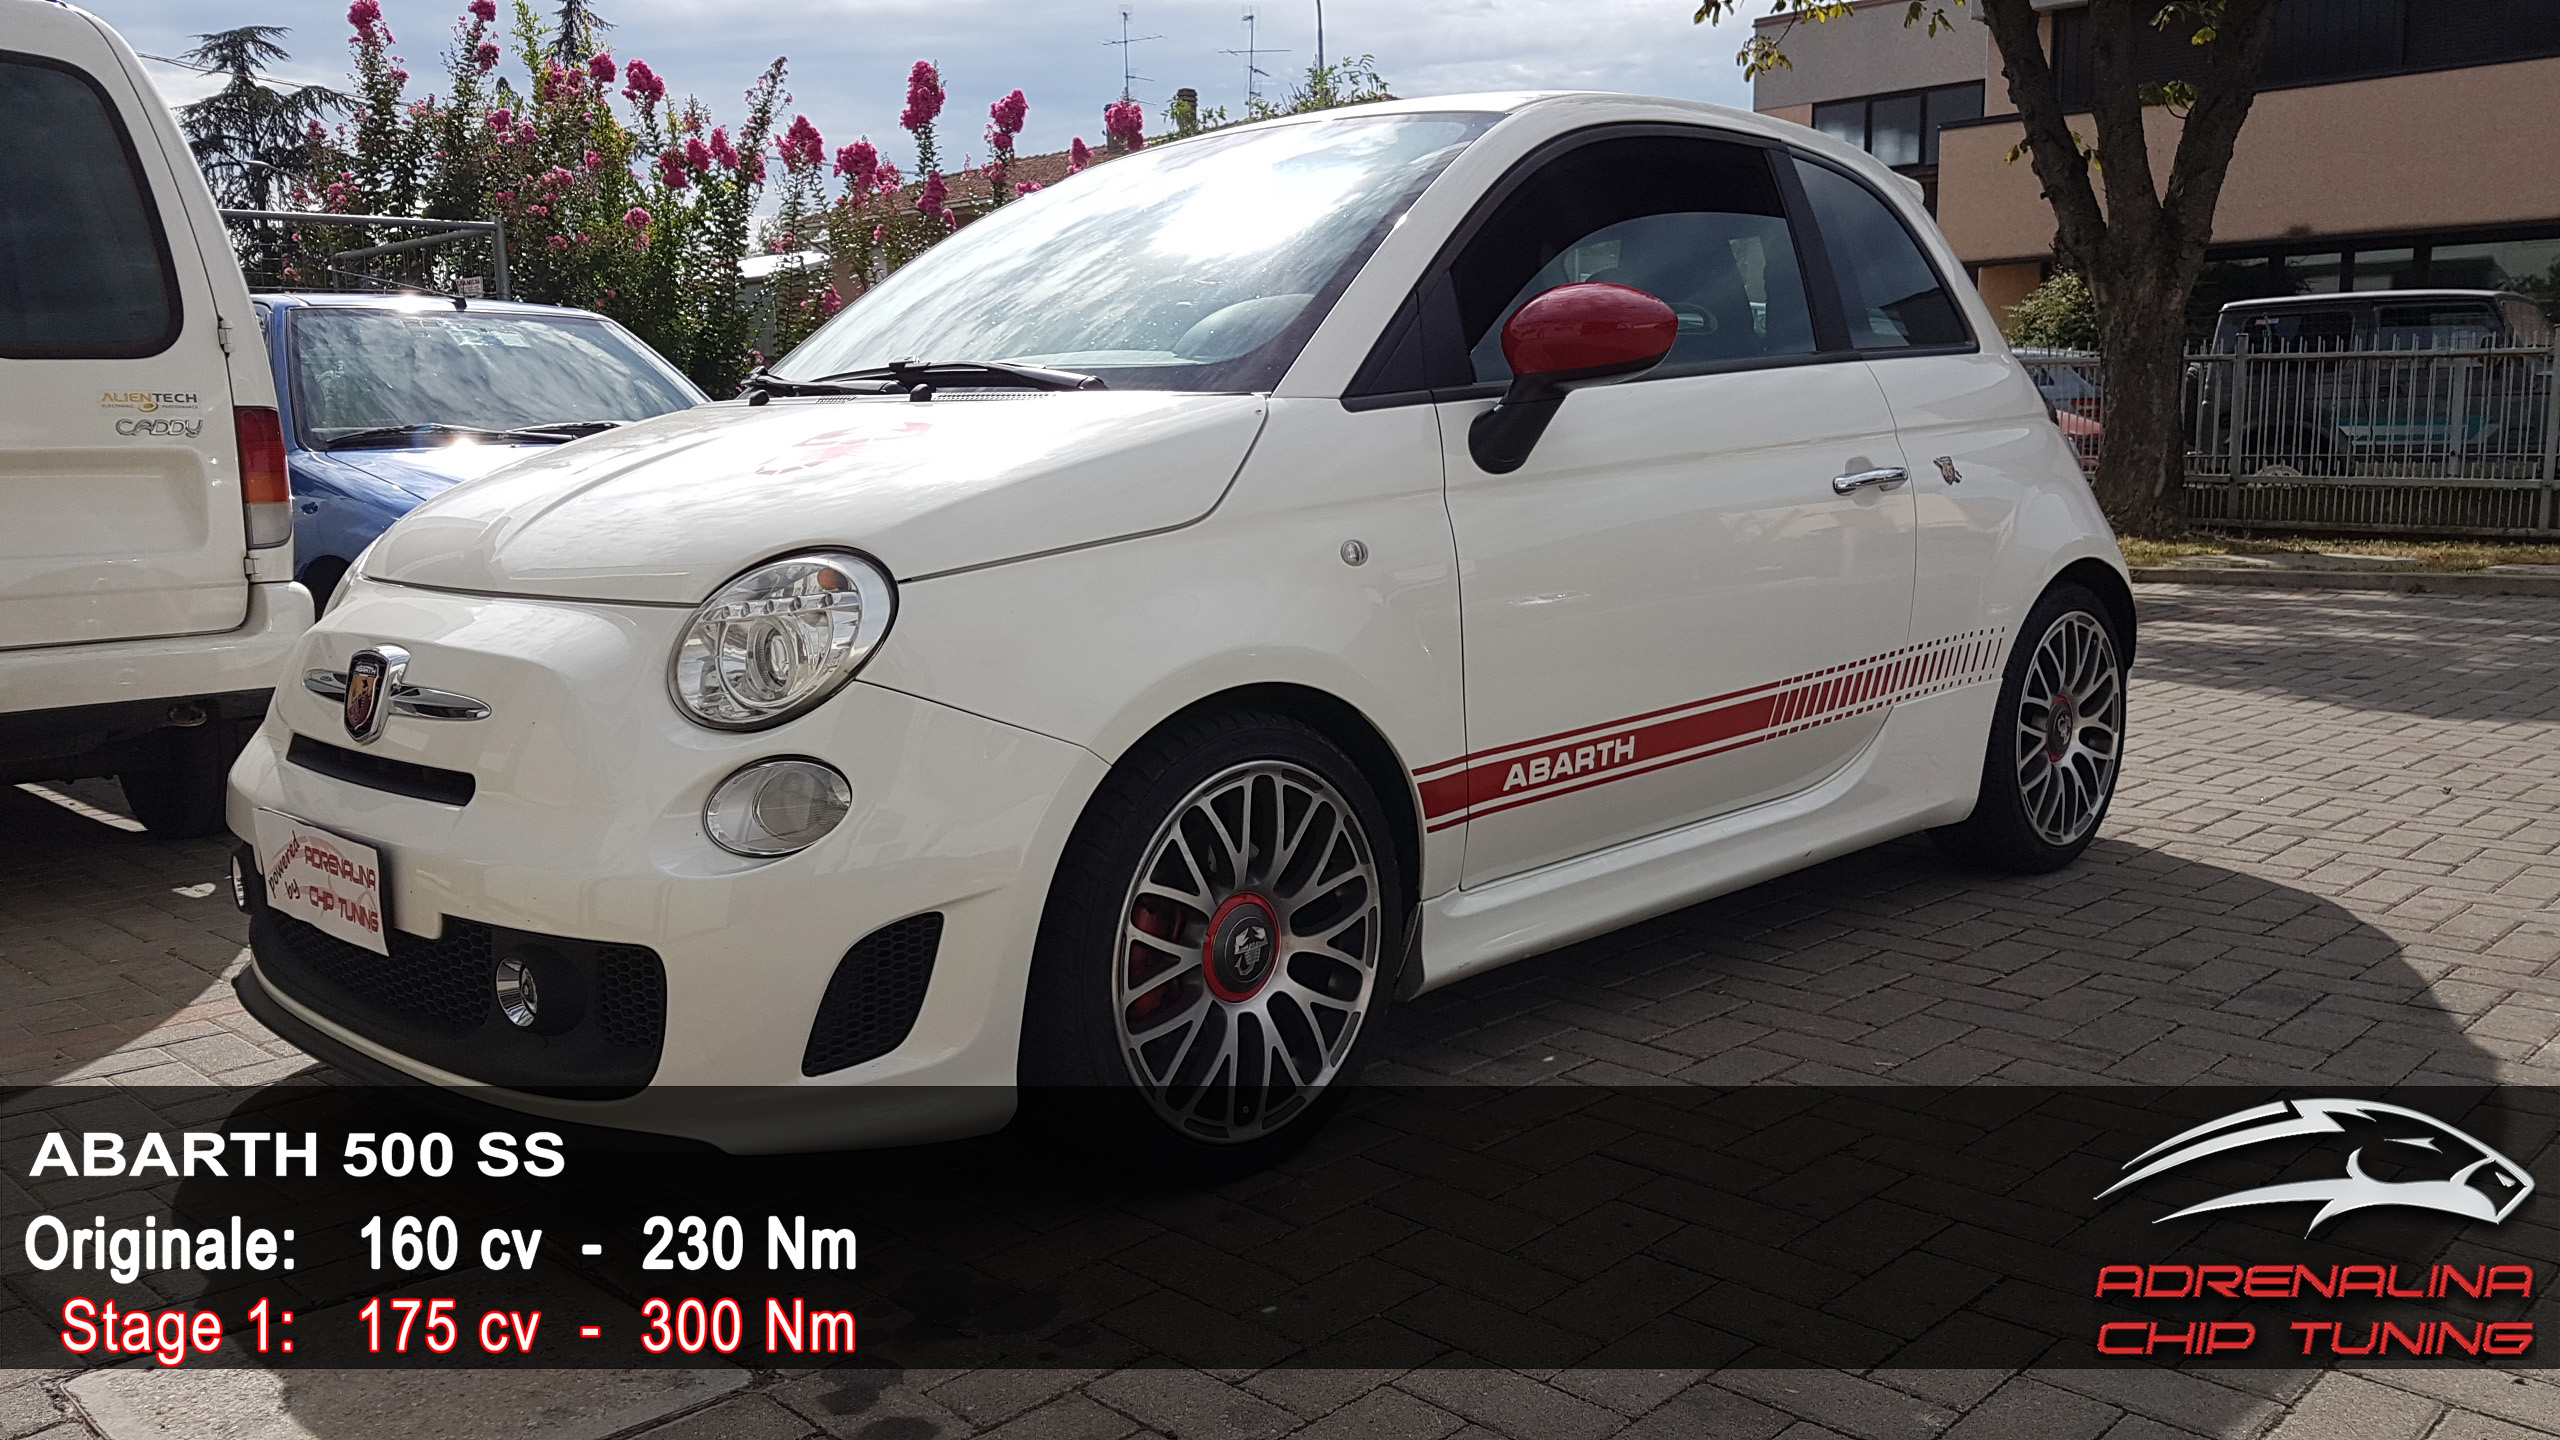 abarth 500 ss adrenalina chip tuning. Black Bedroom Furniture Sets. Home Design Ideas